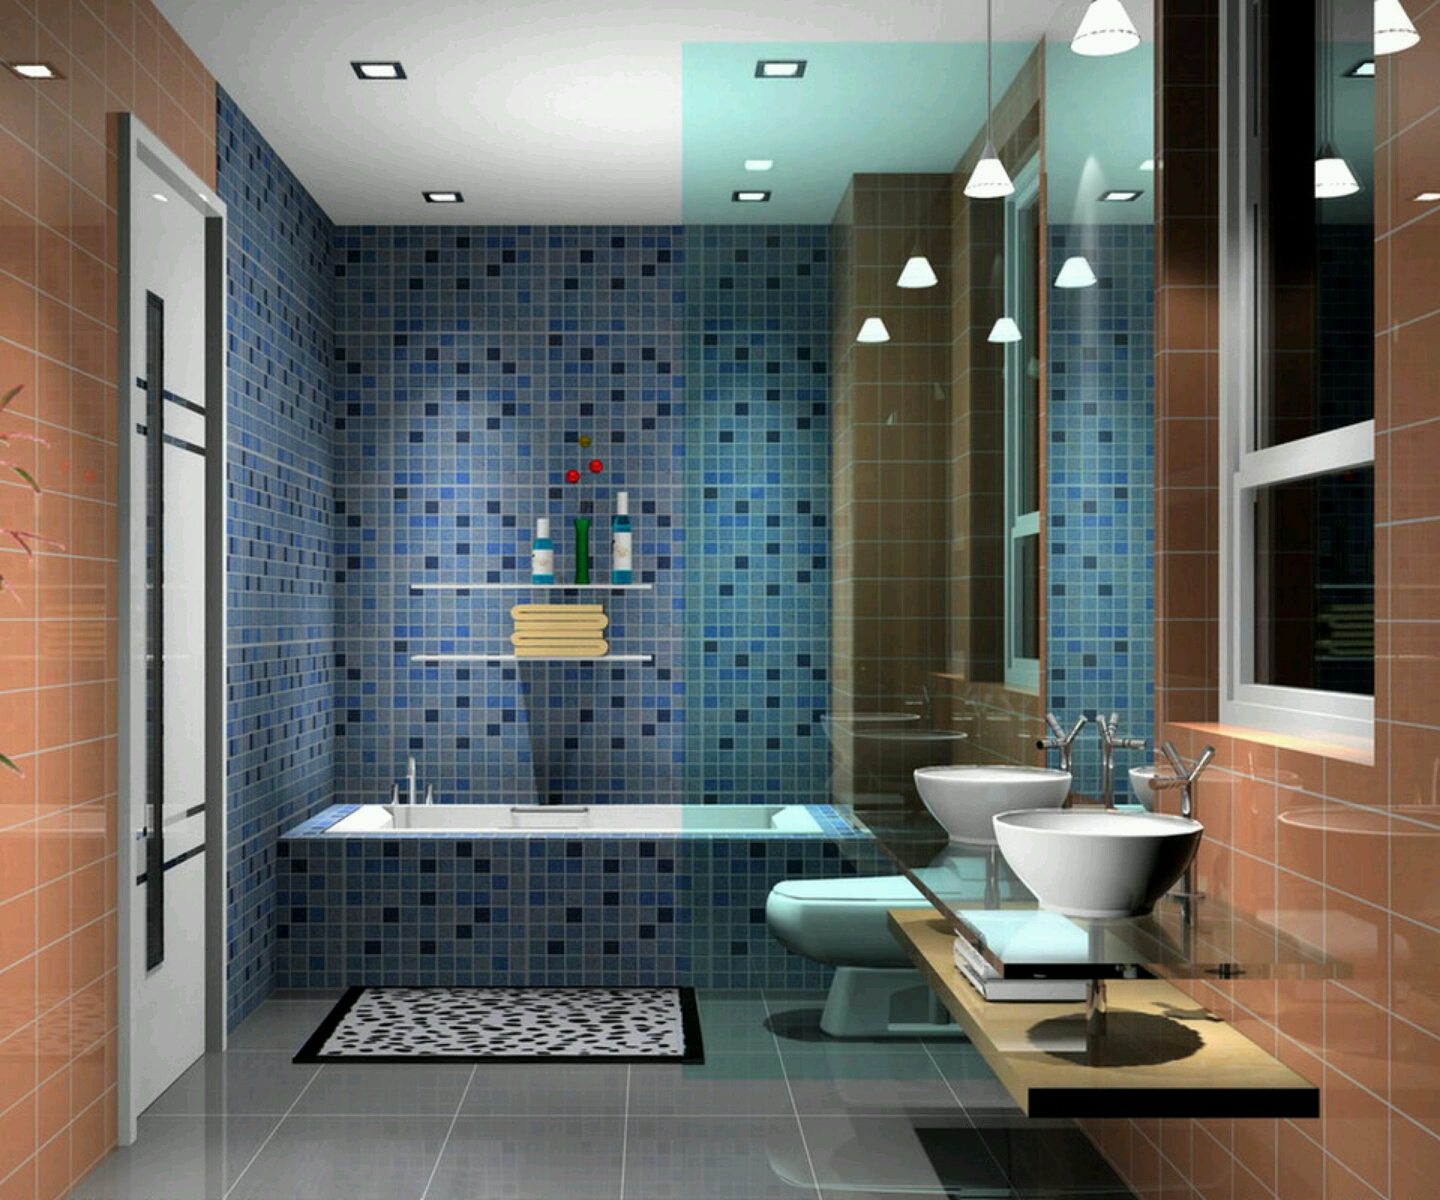 New home designs latest modern bathrooms best designs ideas for Bathroom design ideas